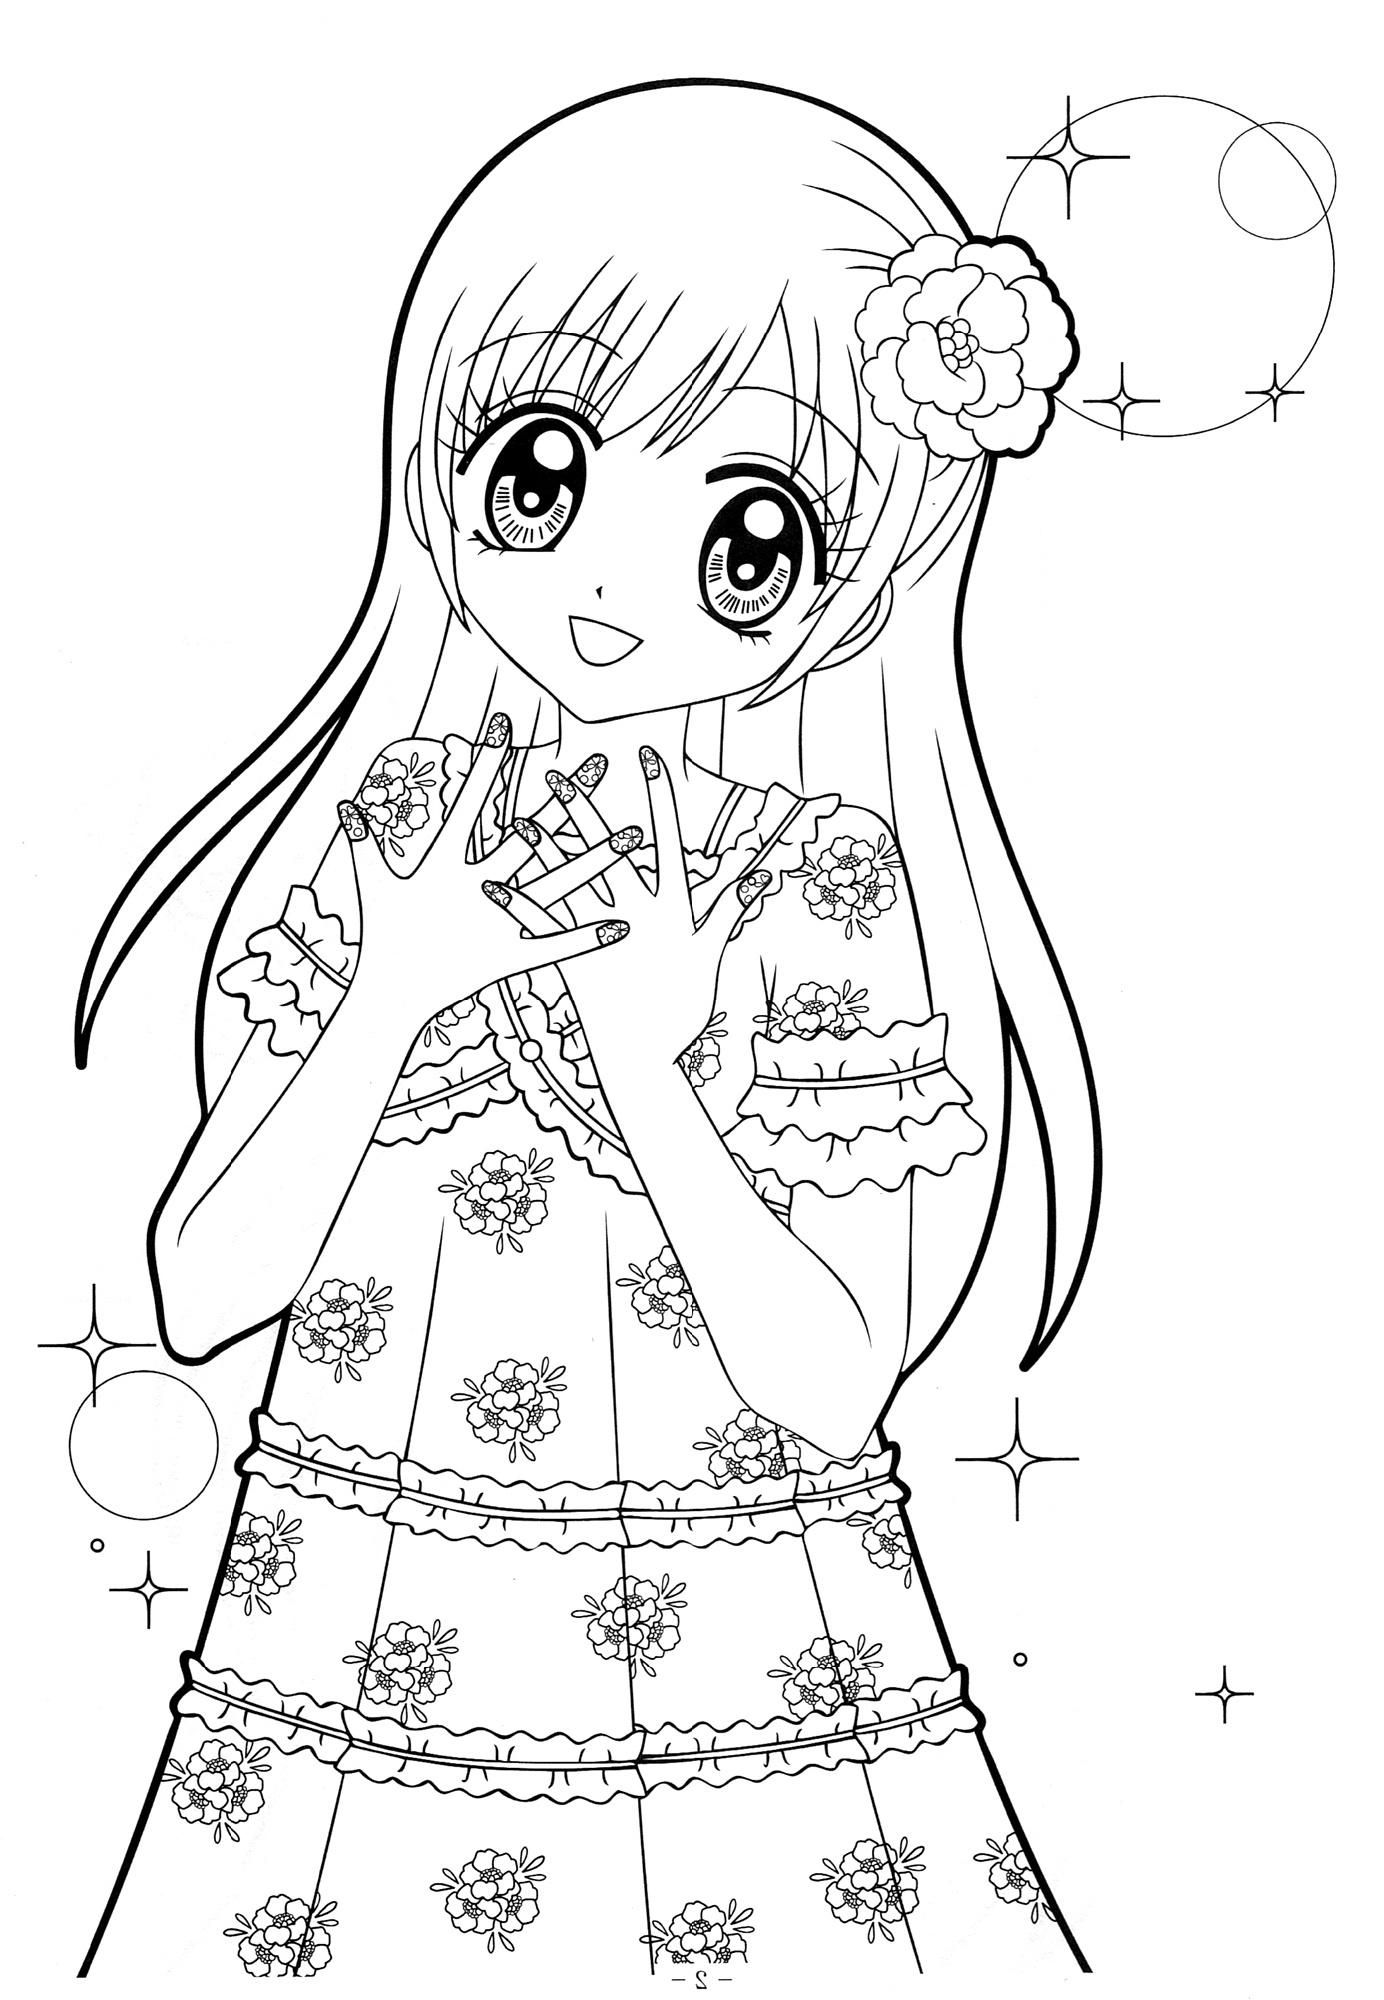 Awesome Coloring Pages To Print Anime That You Must Know